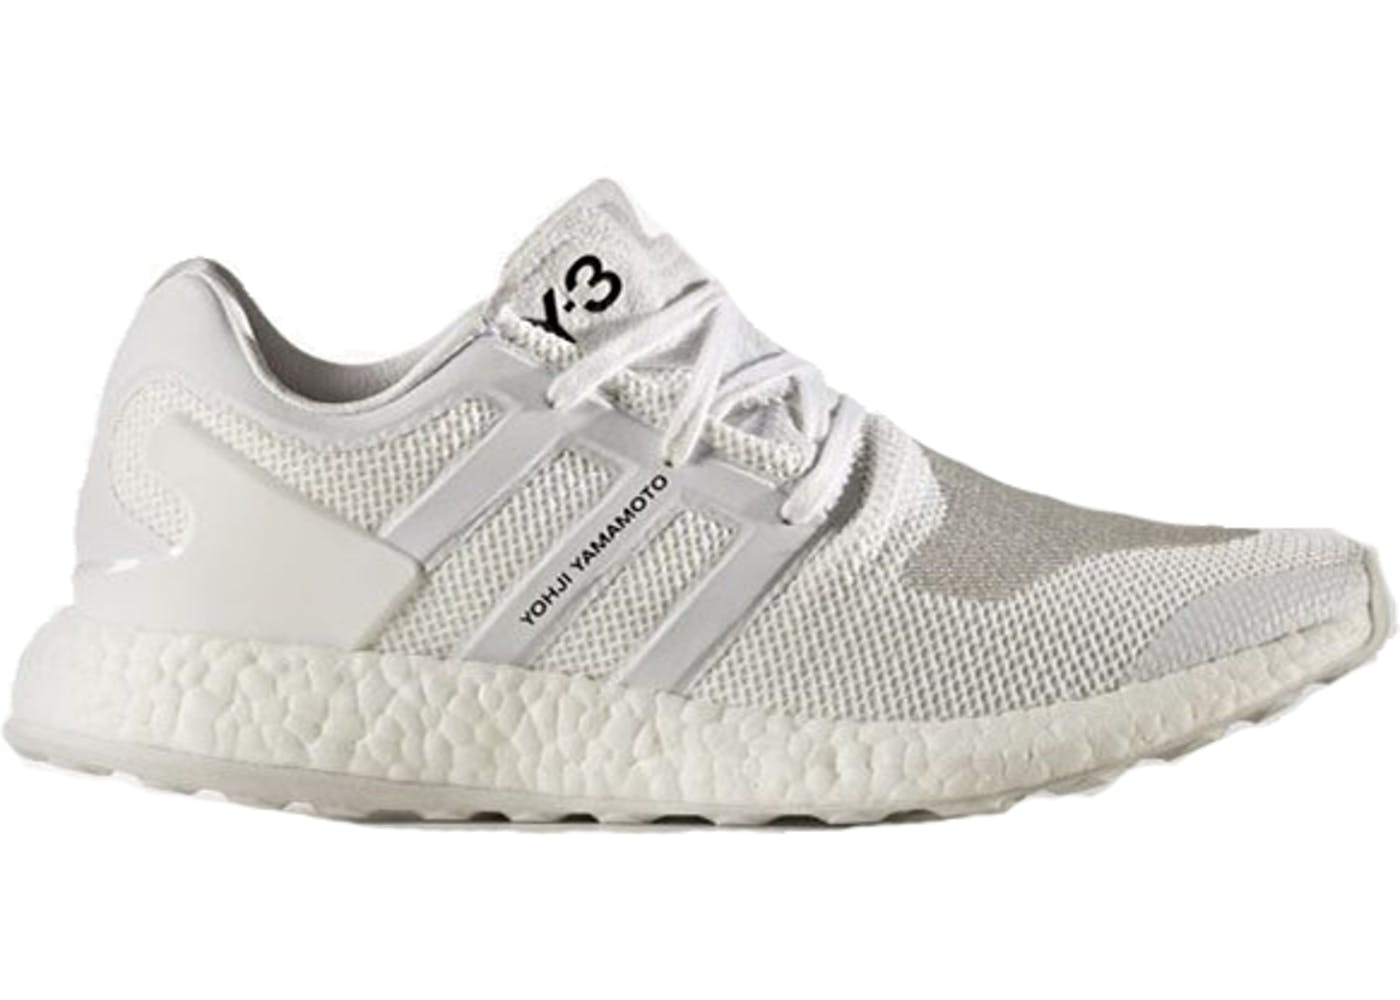 babe03f36 adidas y 3 pure boost oreo black white cp9888 mens sizes for sale